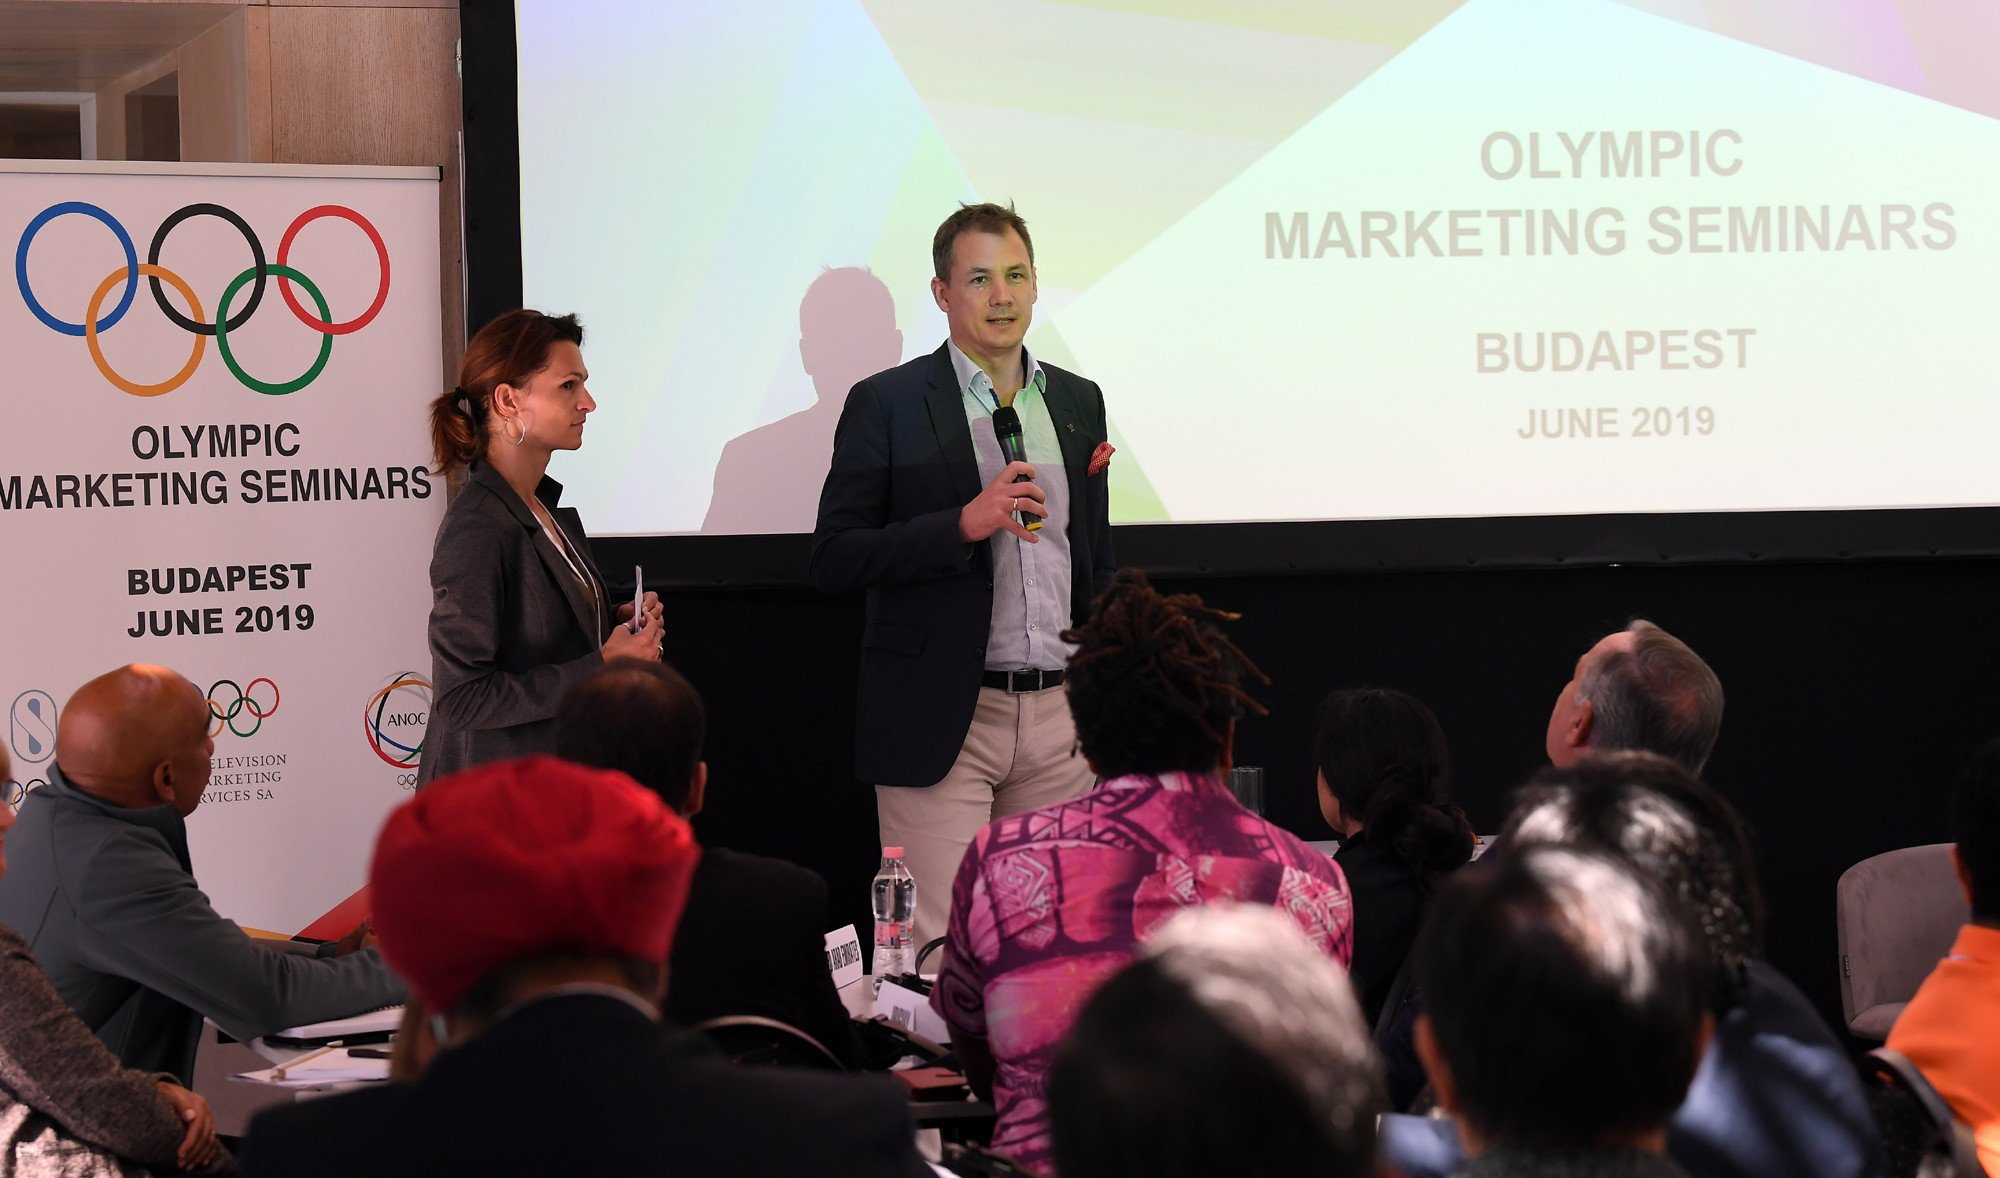 Hungarian Olympic Committee President Kulcsár aiming to grow country's brand after Budapest hosts Olympics marketing seminar